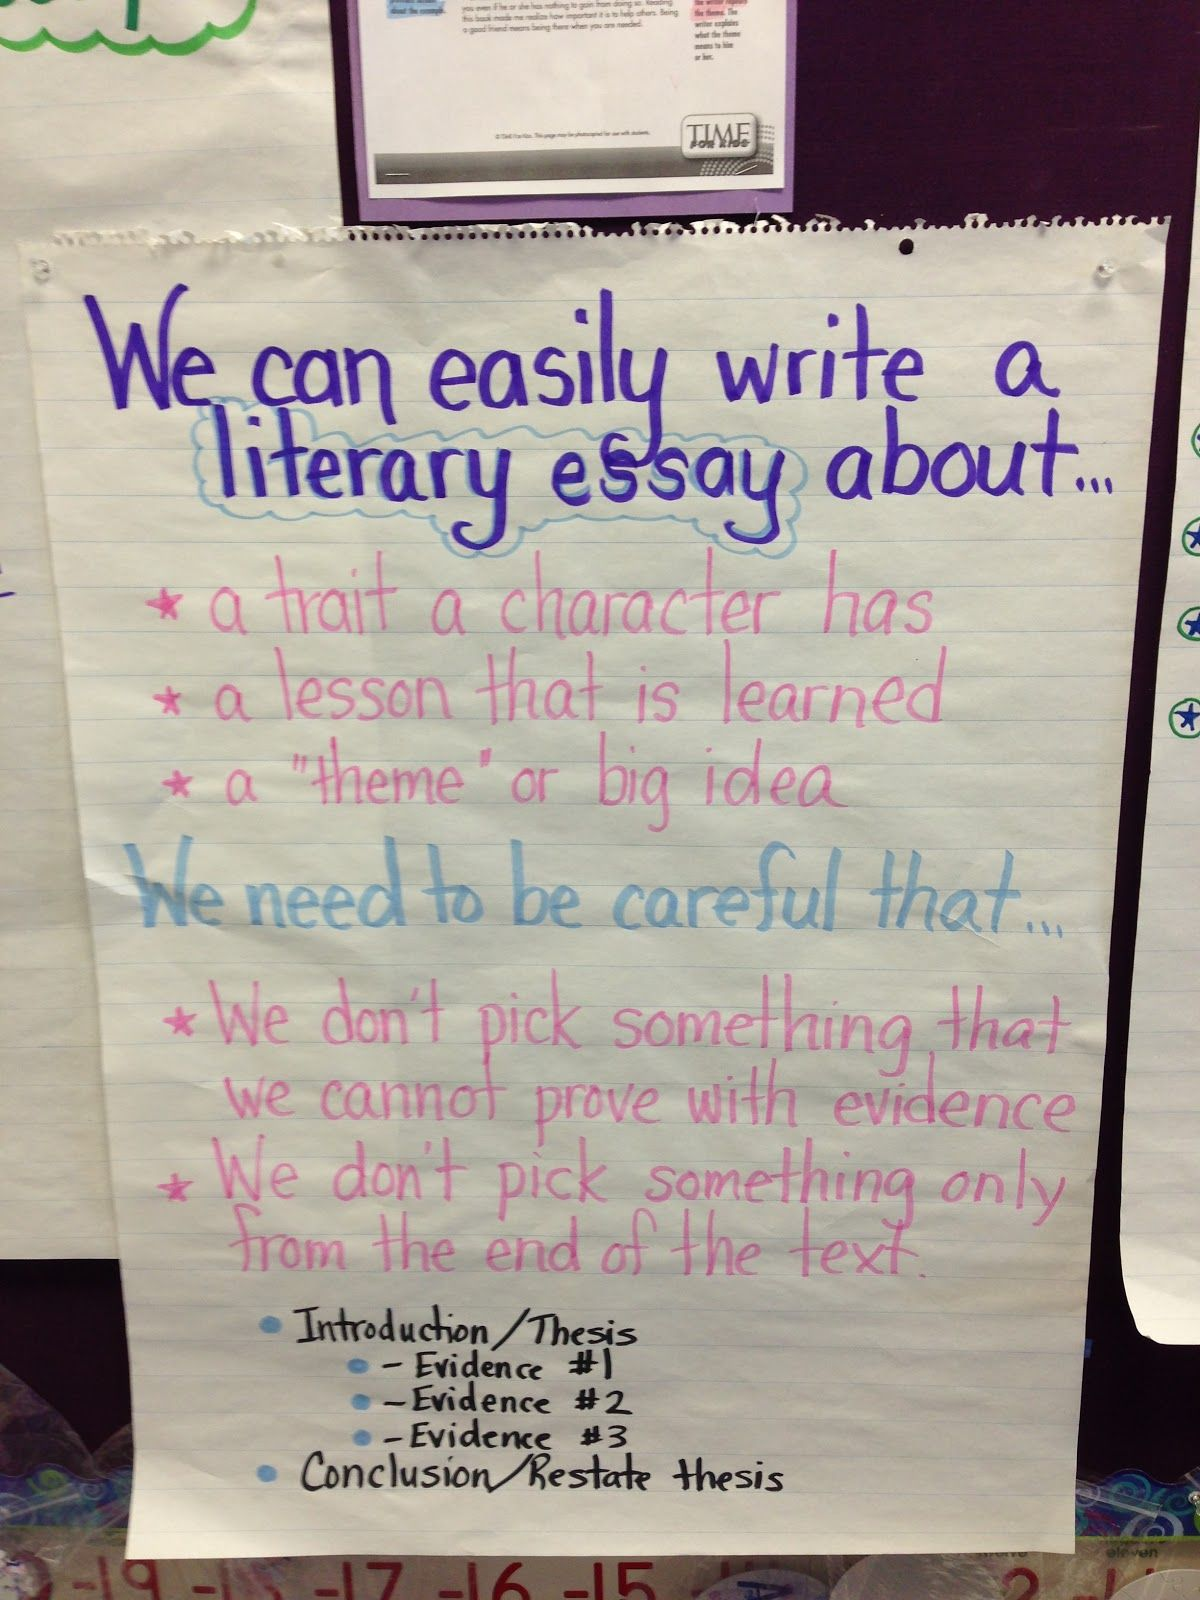 What's your method to writing essays?